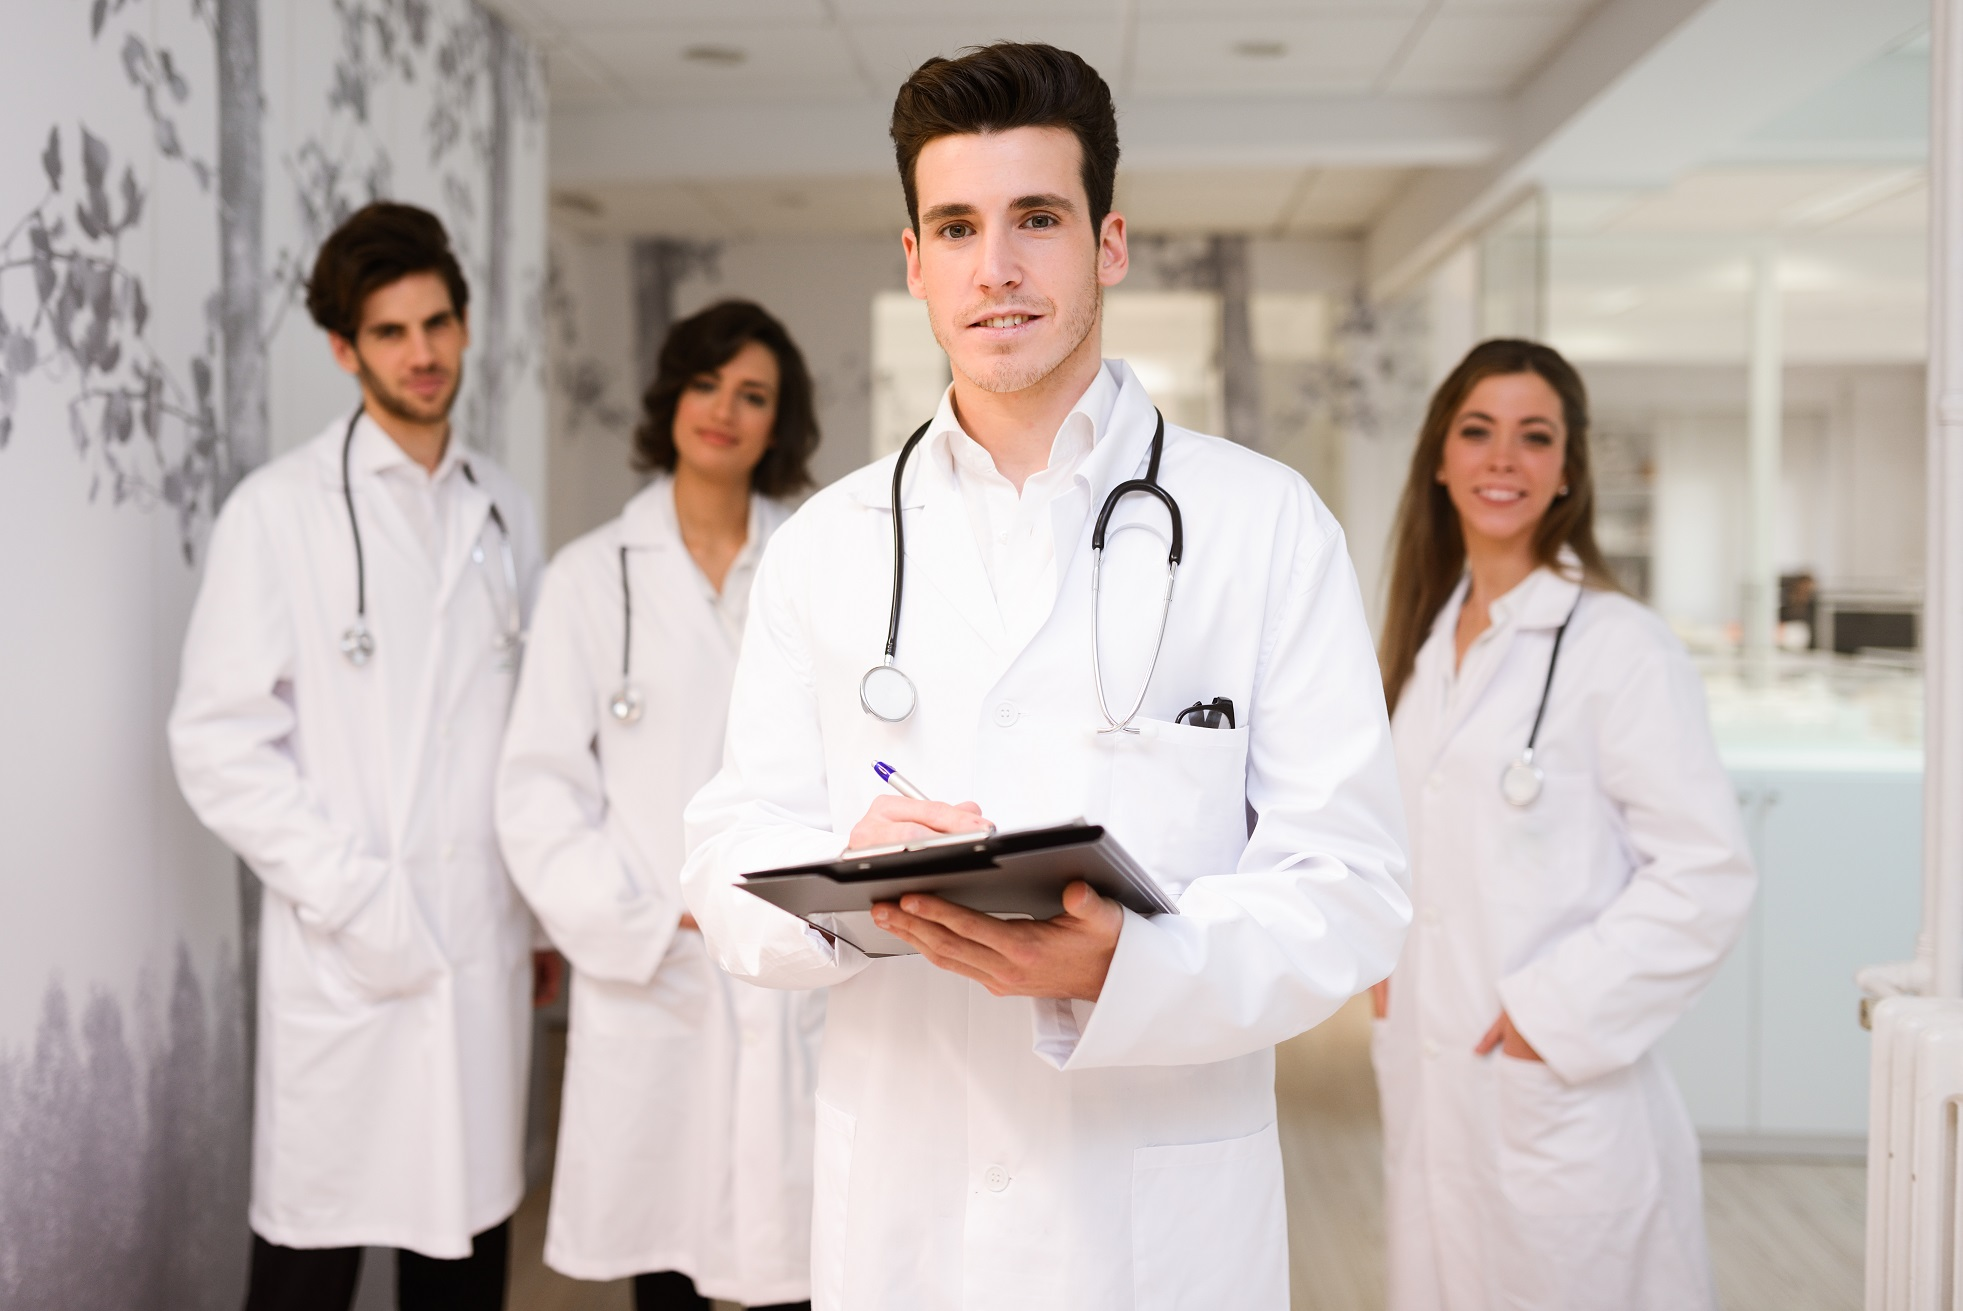 http://www.freepik.com/free-photo/young-practitioner-his-first-day_899850.htm#query=medical%20staff&position=32